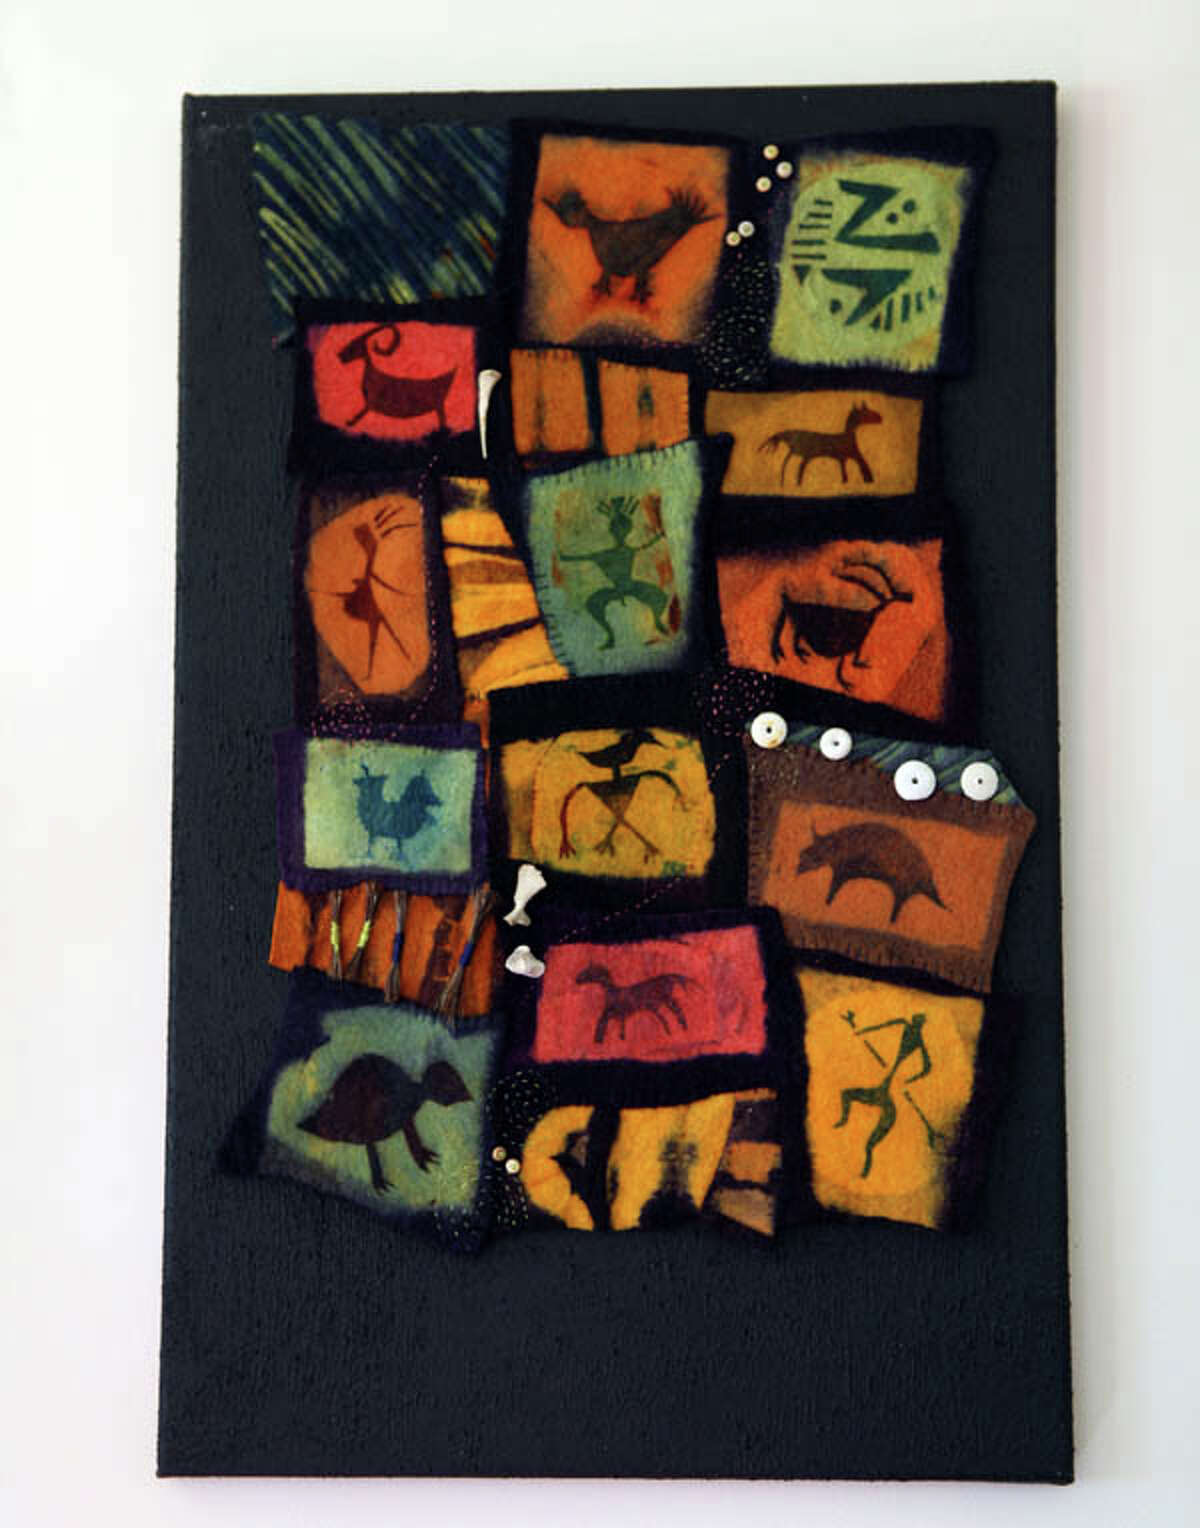 Felt objects take on unique personalities in the artistry of Linda Van Alstyne, a self-taught fabric sculptor who loves to experiment - and who loves color. Read the story here.